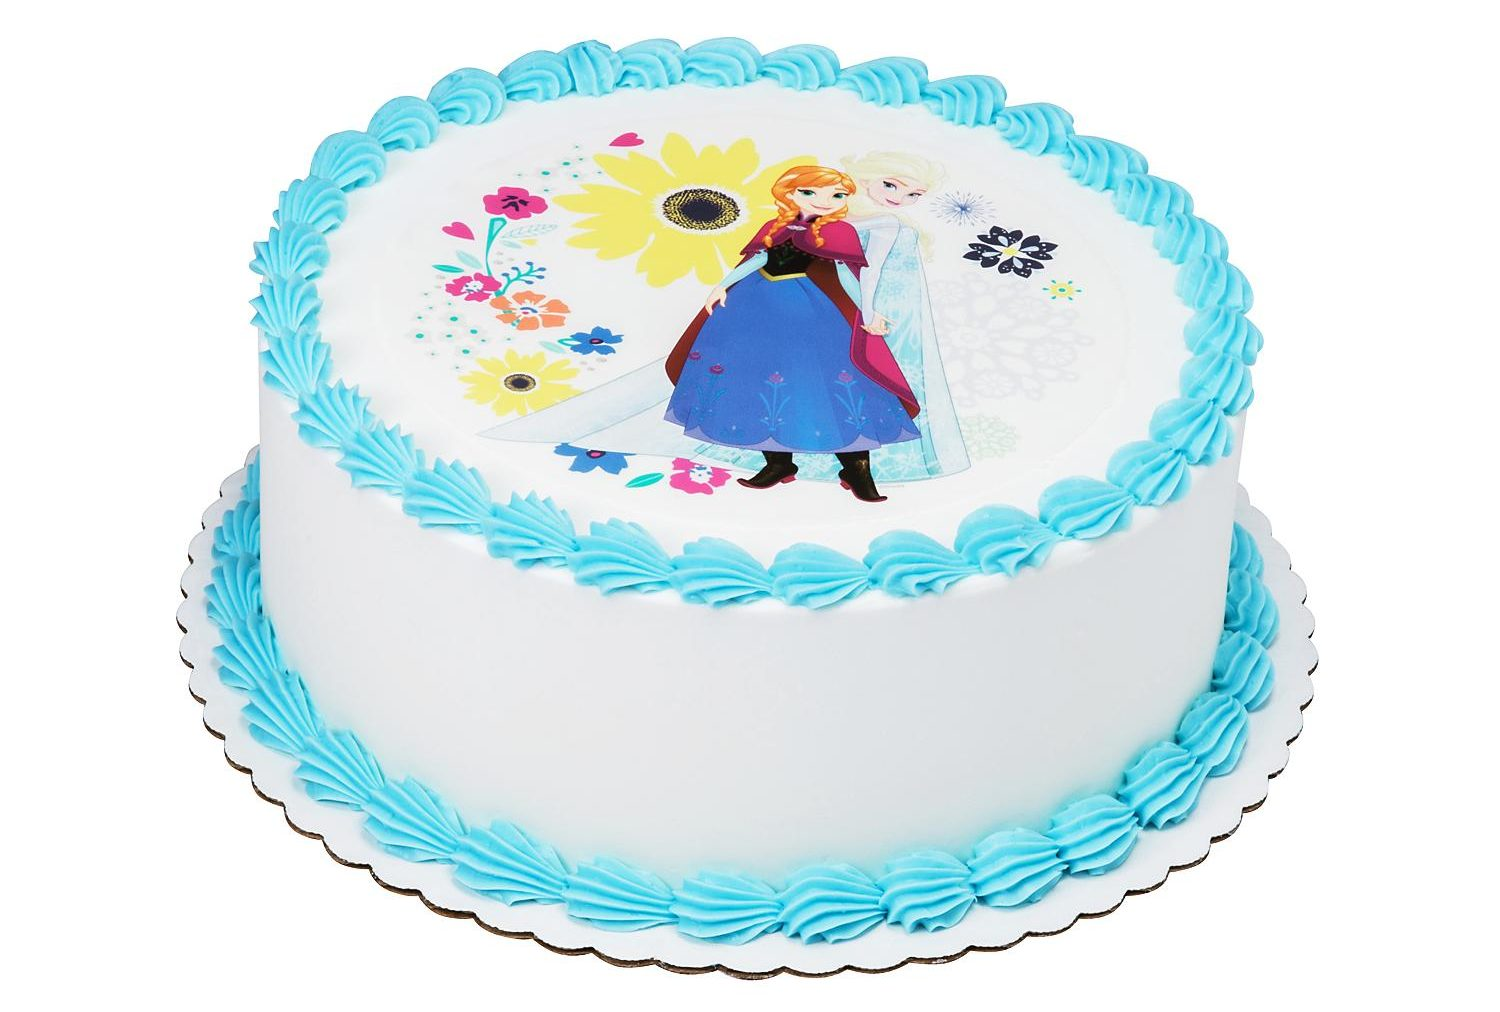 Cool Frozen 2 Cake At Sams Club Feeds 66 People Simplemost Personalised Birthday Cards Veneteletsinfo